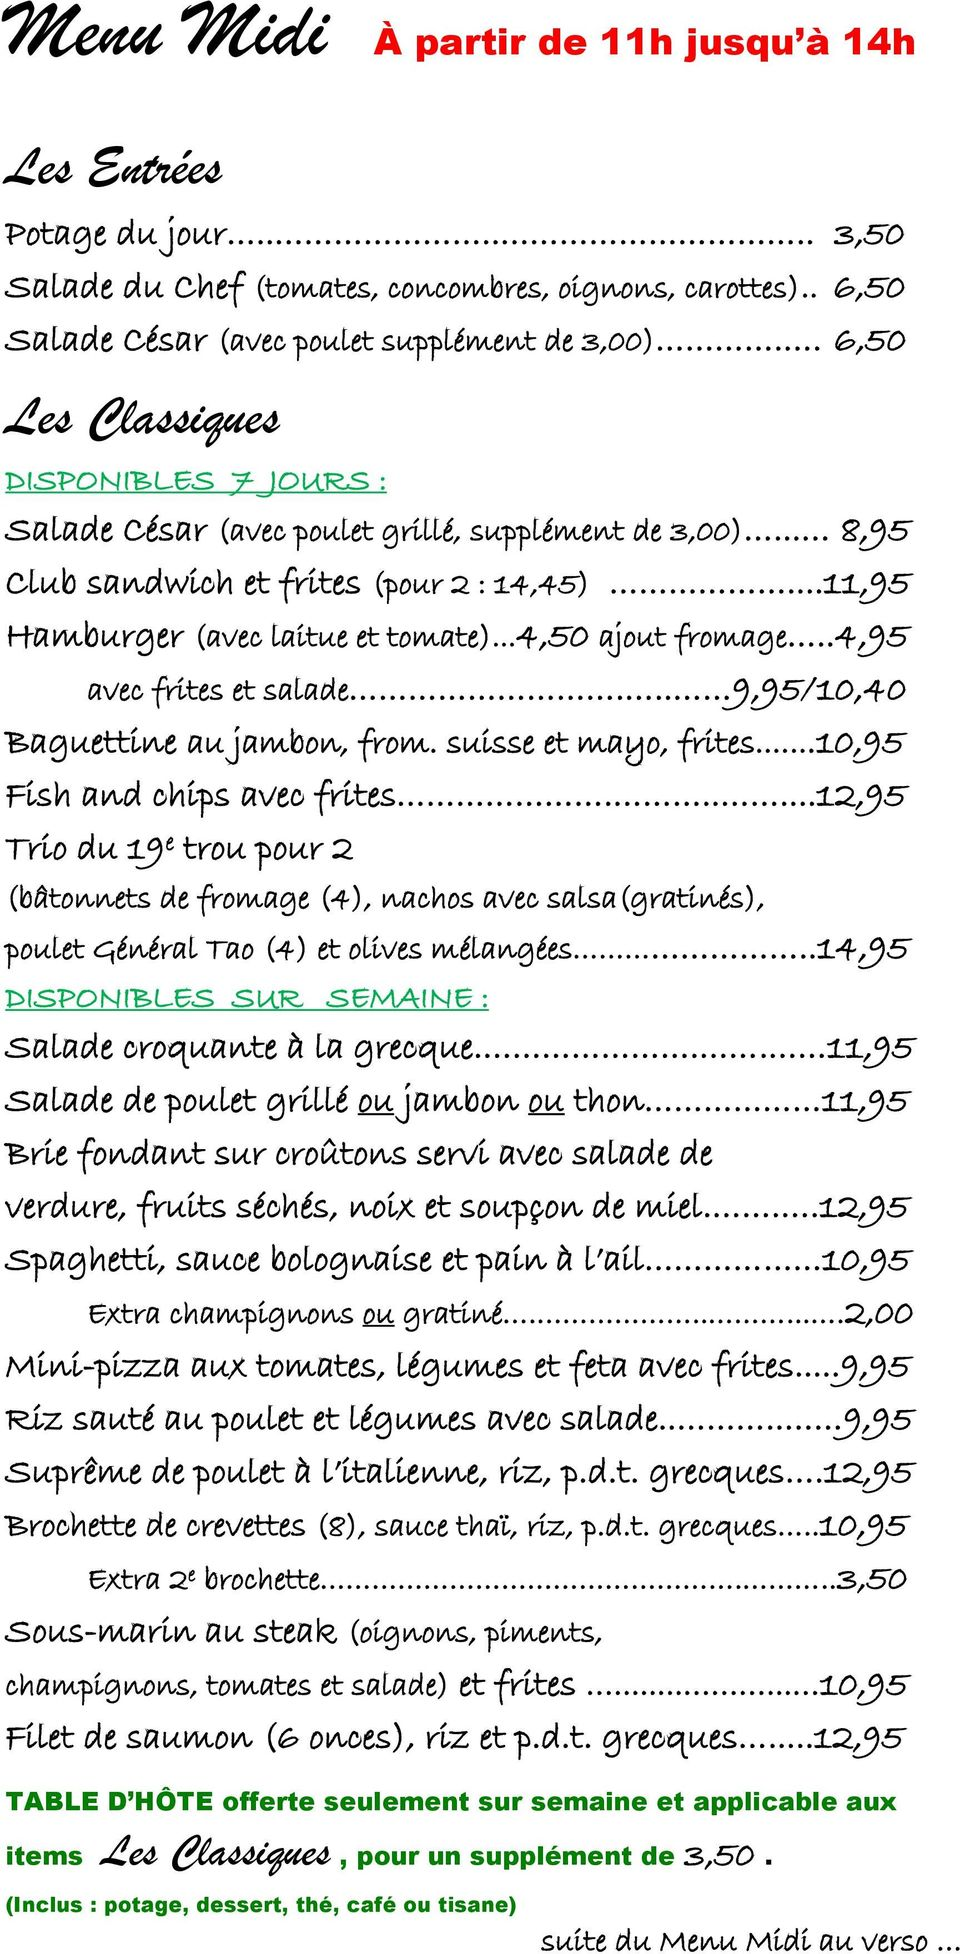 ..4,50 ajout fromage..4,95 avec frites et salade... 9,95/10,40 Baguettine au jambon, from. suisse et mayo, frites...10,95 Fish and chips avec frites.